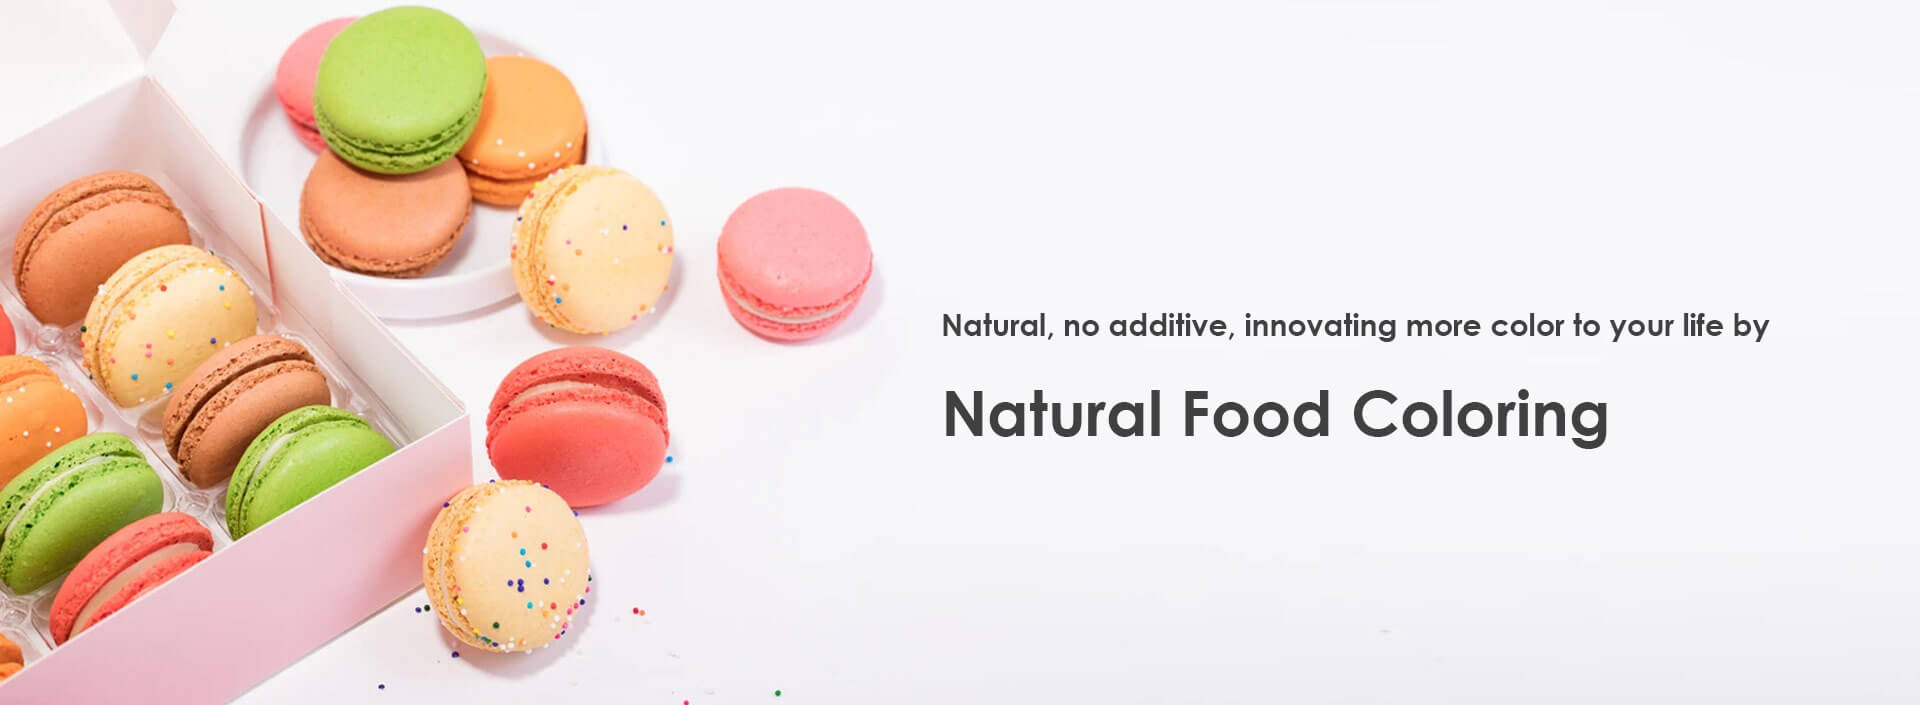 Naural, no additive, innovating more color to your life by natural food coloring